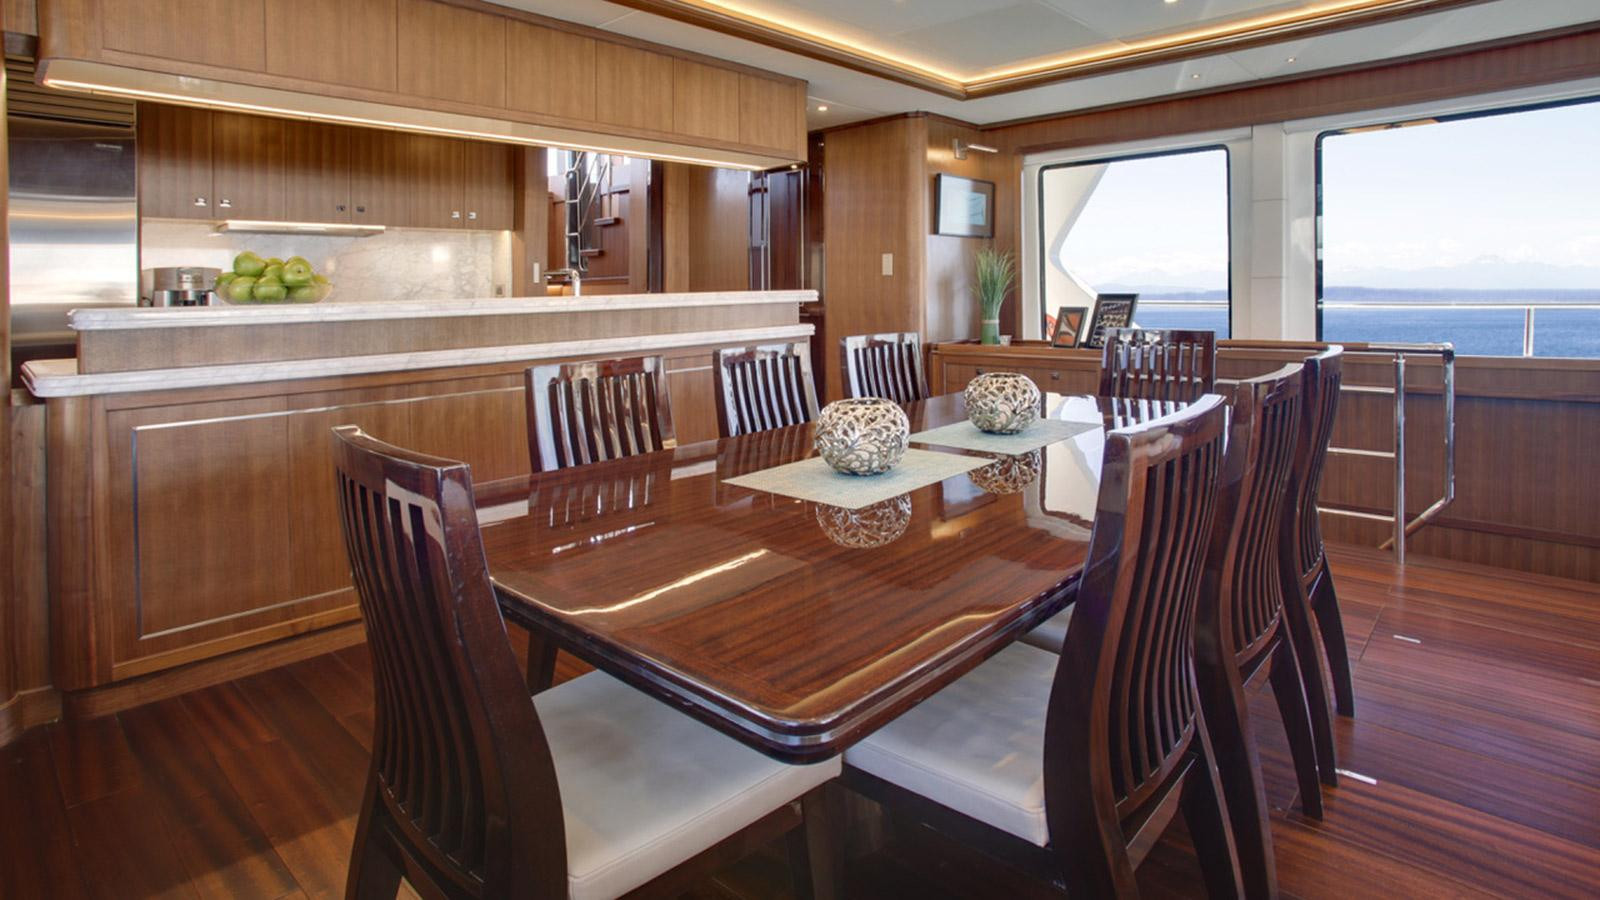 maine traditions hardwood flooring prices of https www boatinternational com yacht market intelligence brokerage pertaining to y1q5ppds6uru327joqdq watta ryde yacht selene dining area 2560x1440